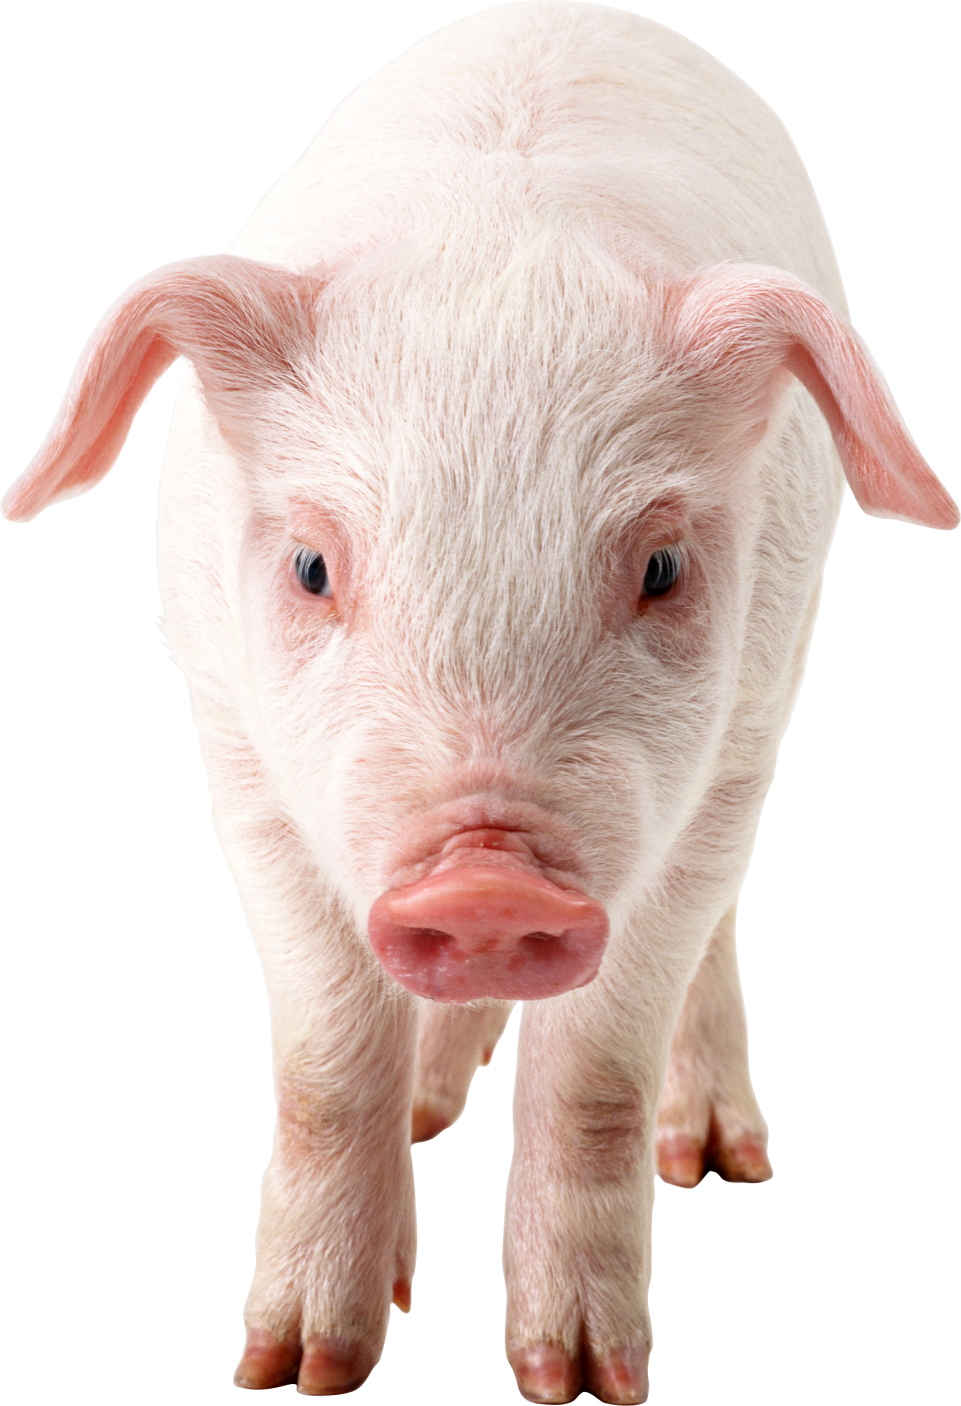 Pig frontview PNG Image